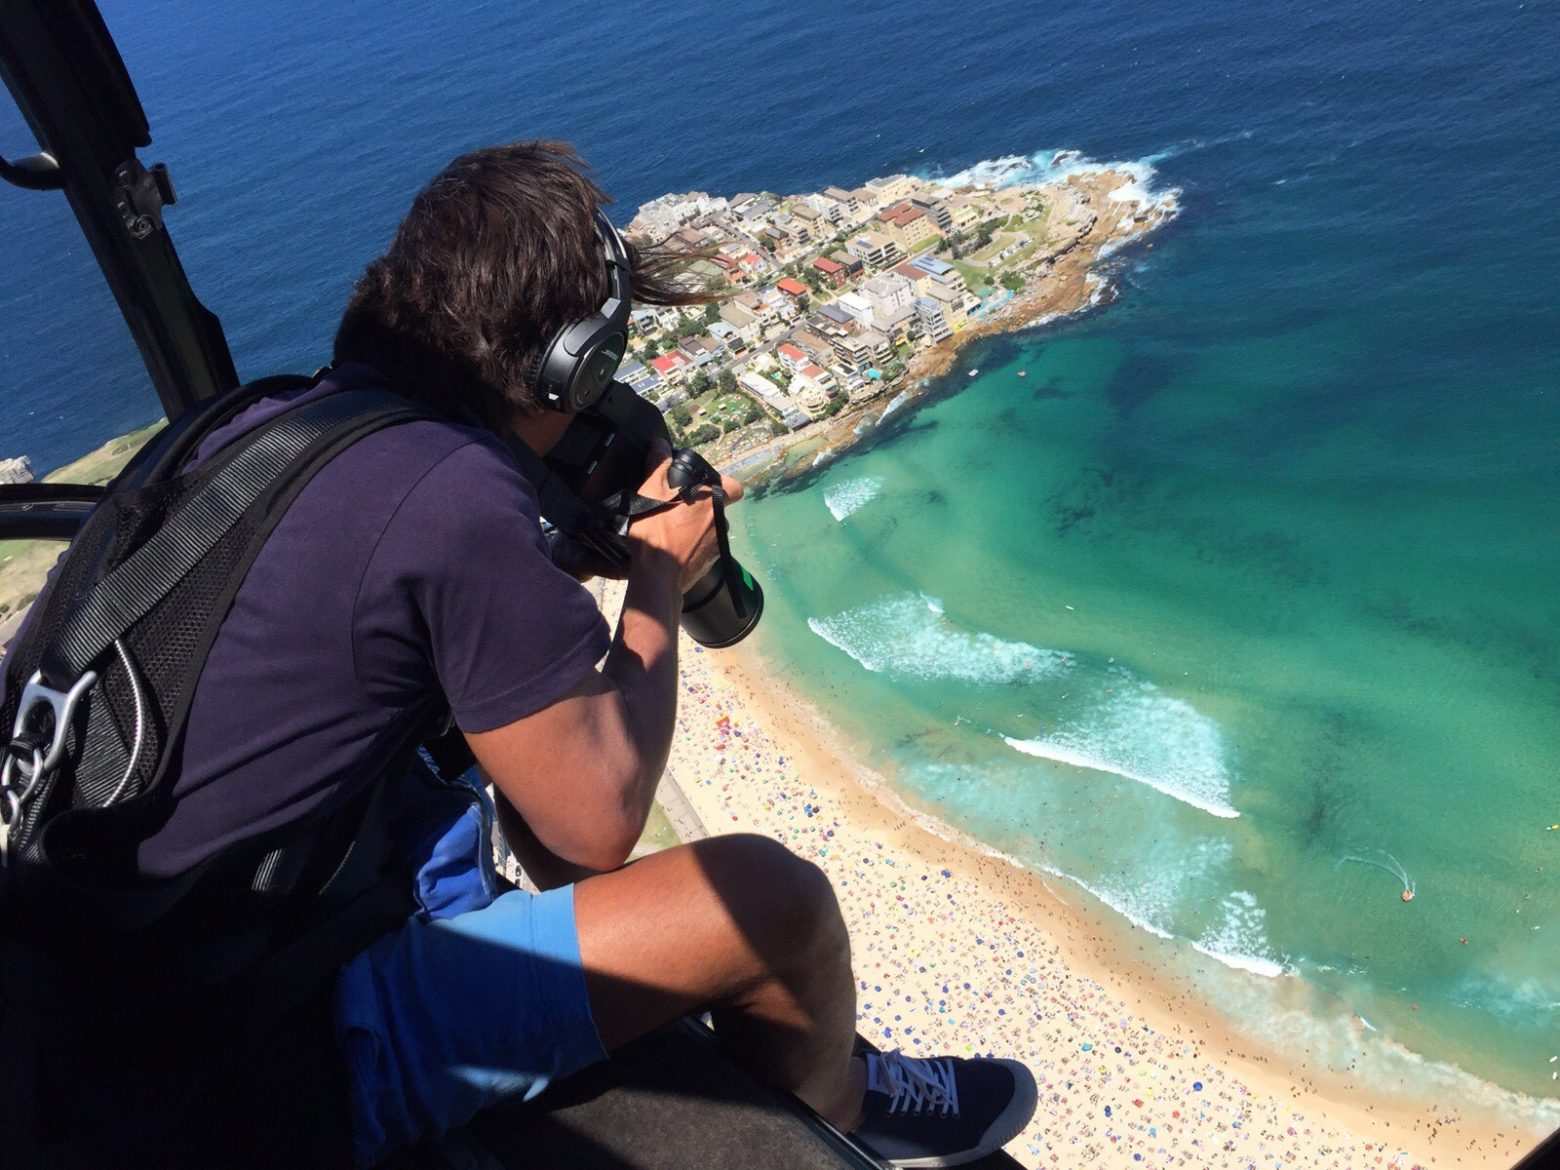 Eugene Tan shooting our Aerial Collection from Helicopters (not drones)